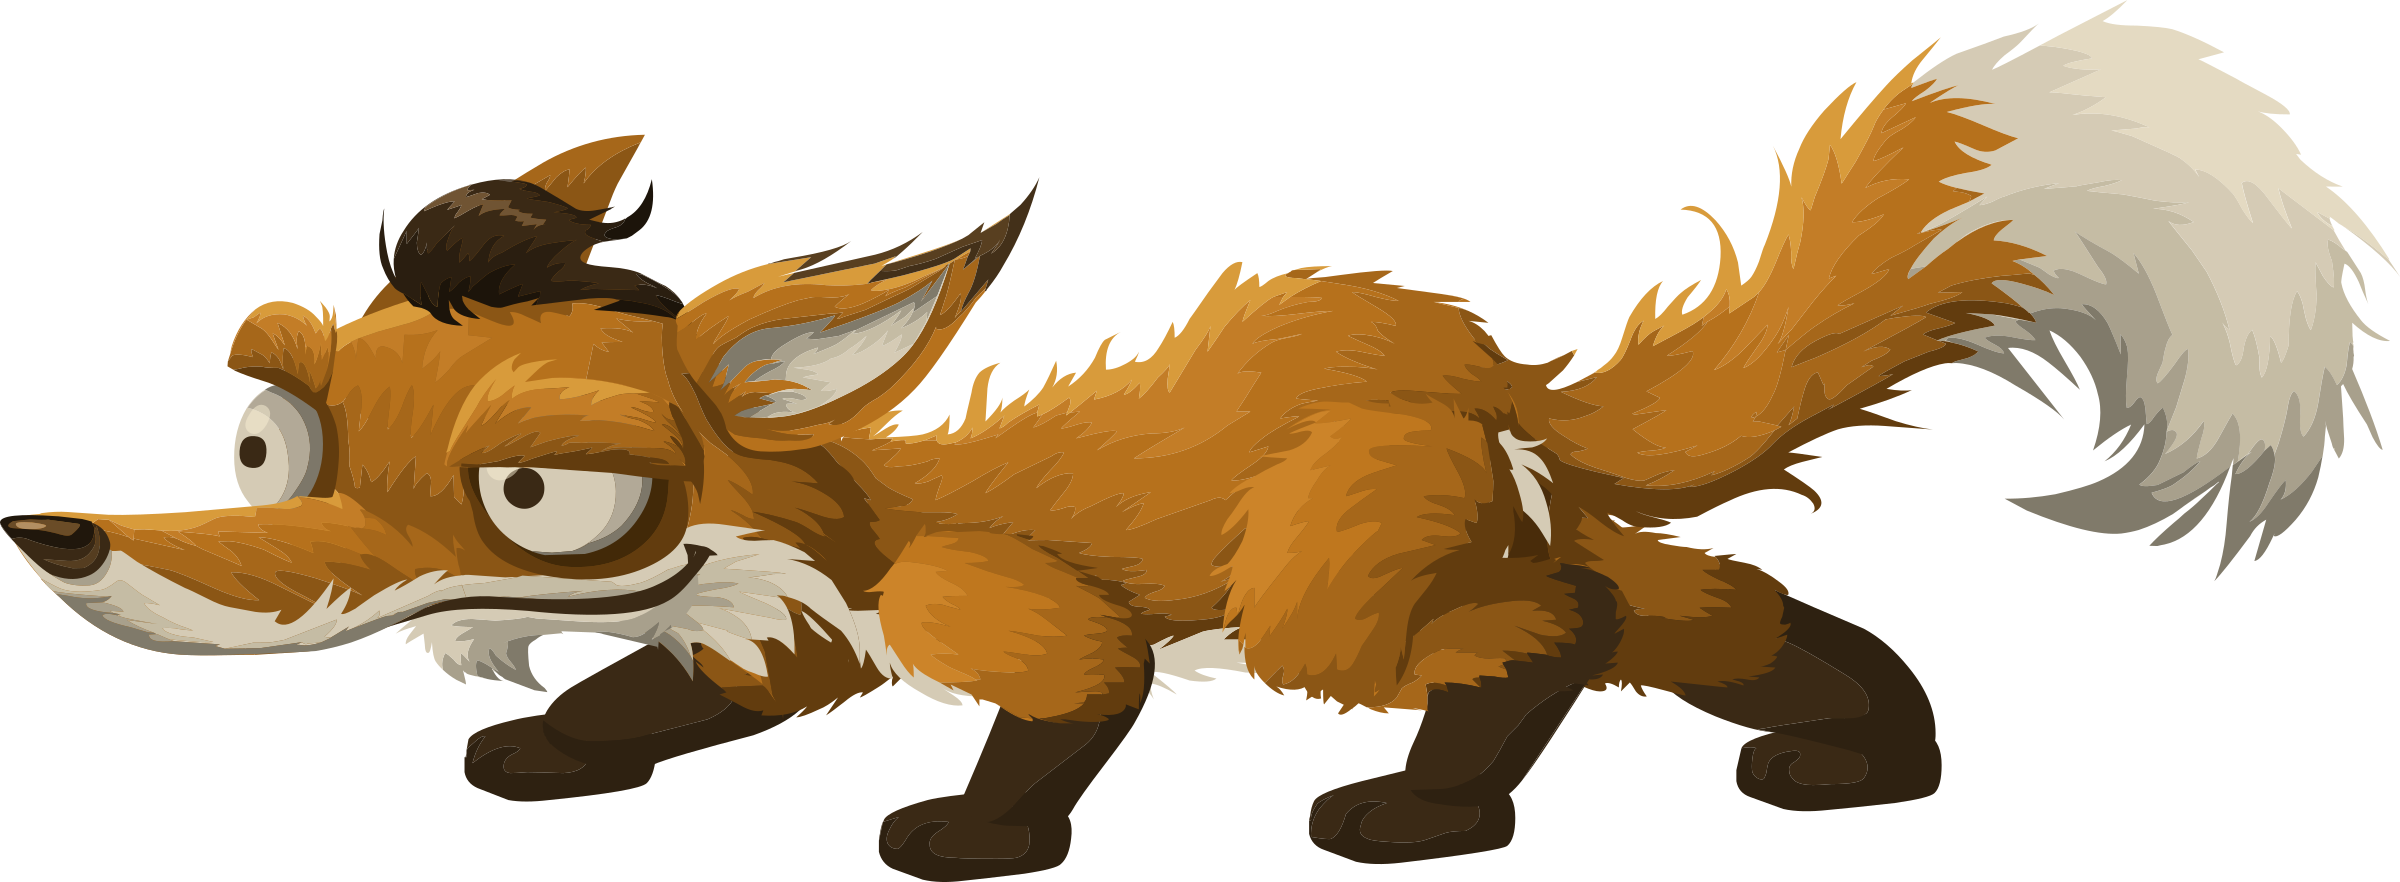 Clipart Inhabitants Npc Fox